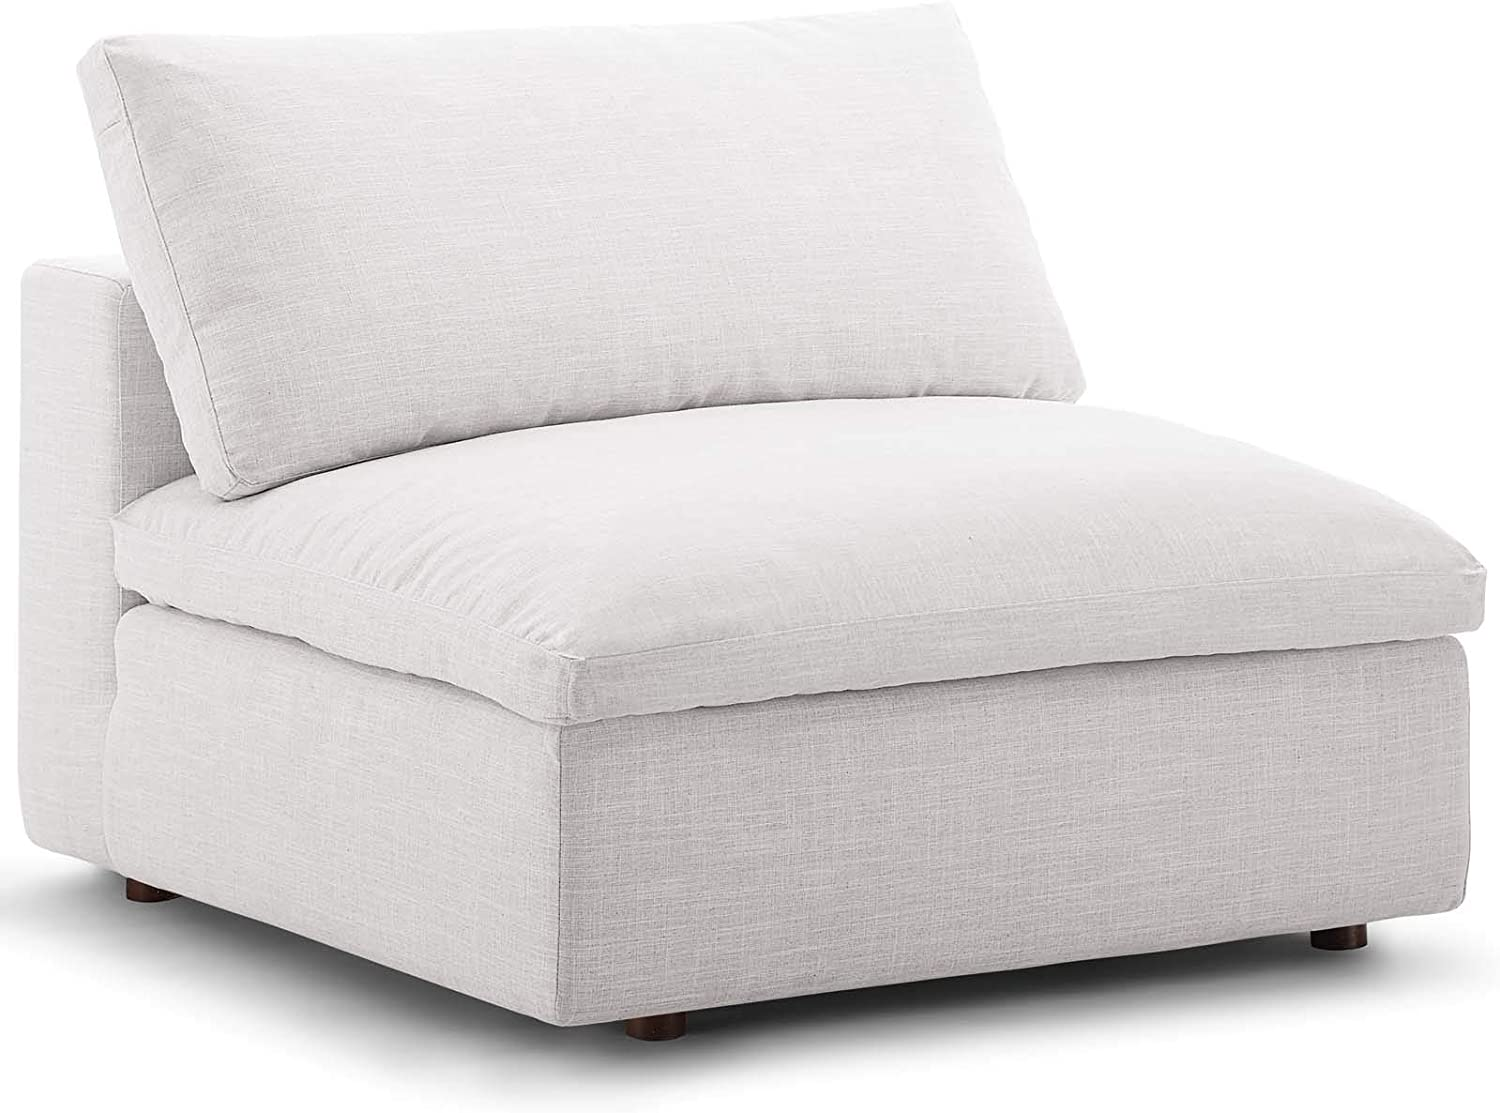 Modway Commix Down-Filled Overstuffed Upholstered Sectional Sofa Armless Chair in Beige